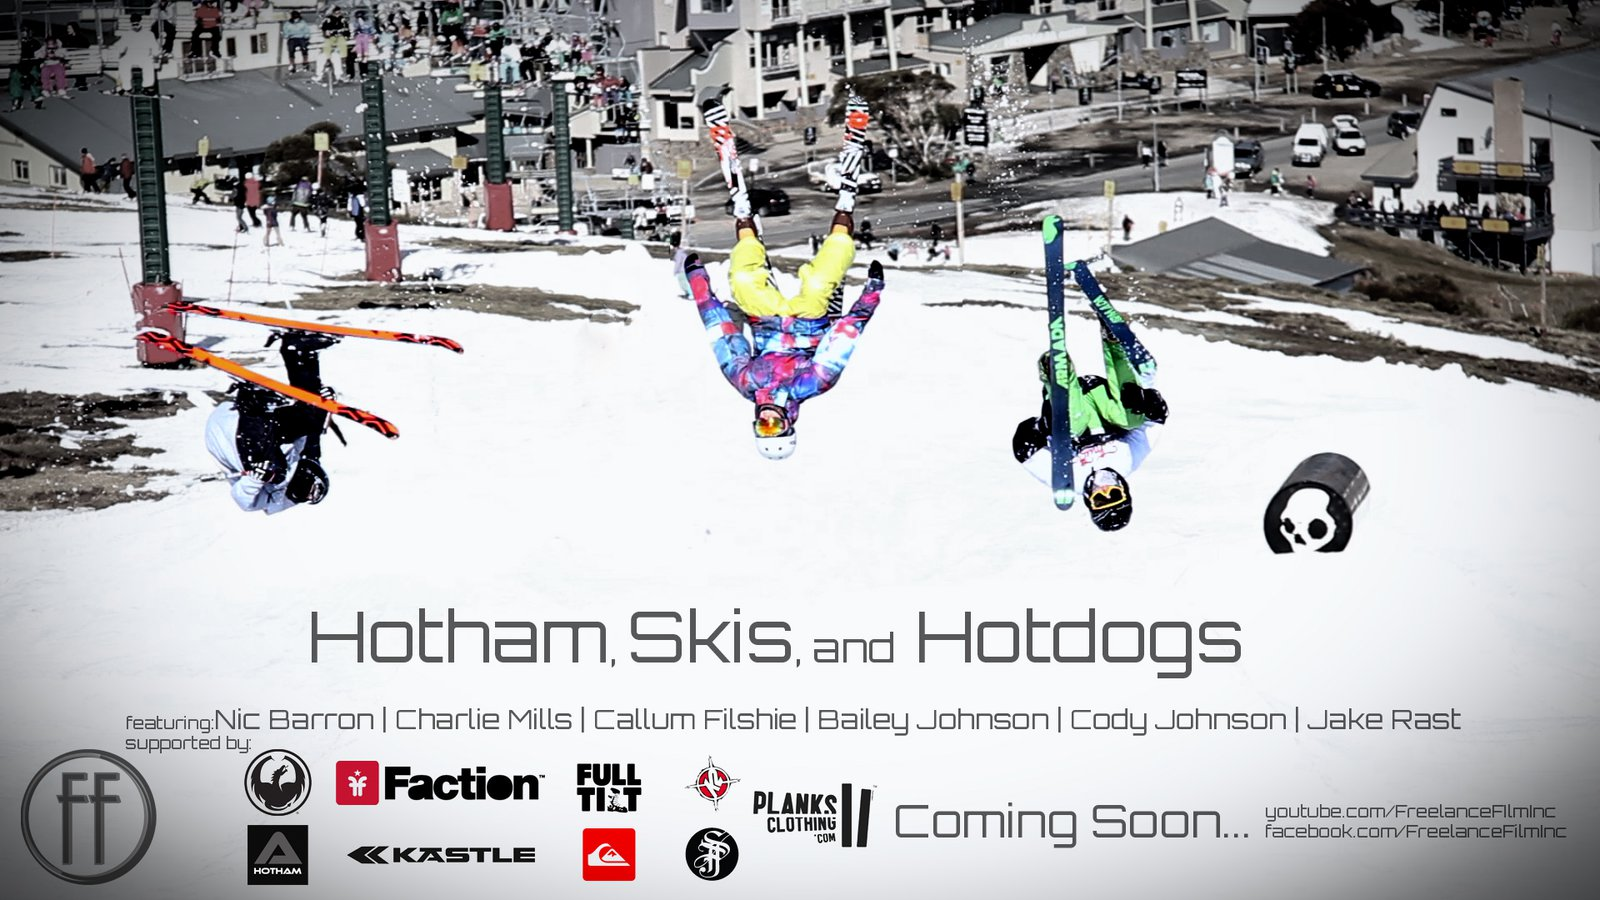 Hotham, Skis, and Hotdogs OFFICIAL